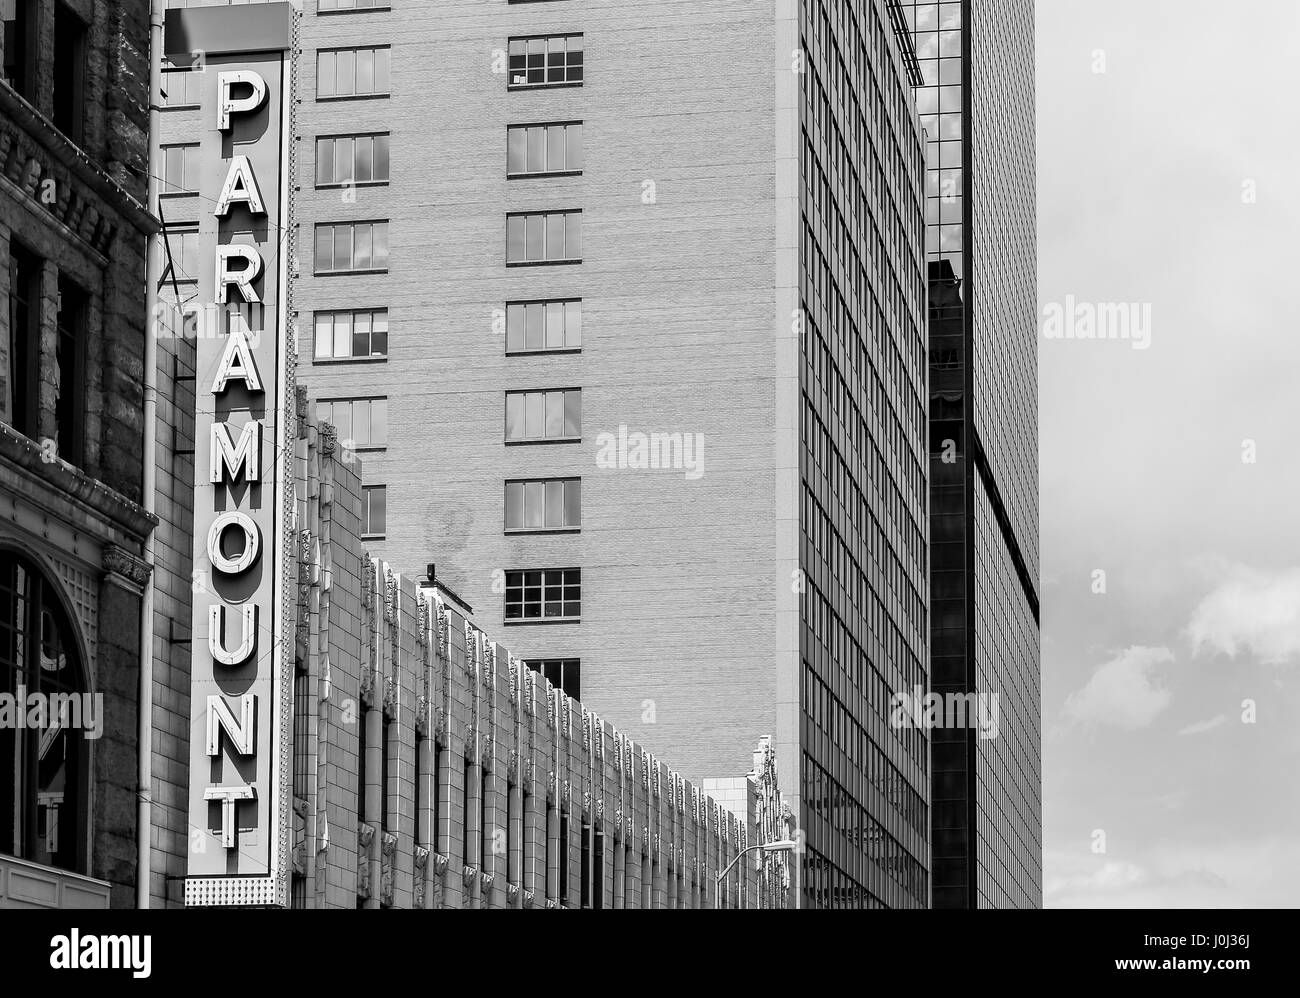 Denver, USA - May 25, 2016: Sign of the Paramount Cafe in the historic Kittredge building in the 16th Street mall. - Stock Image